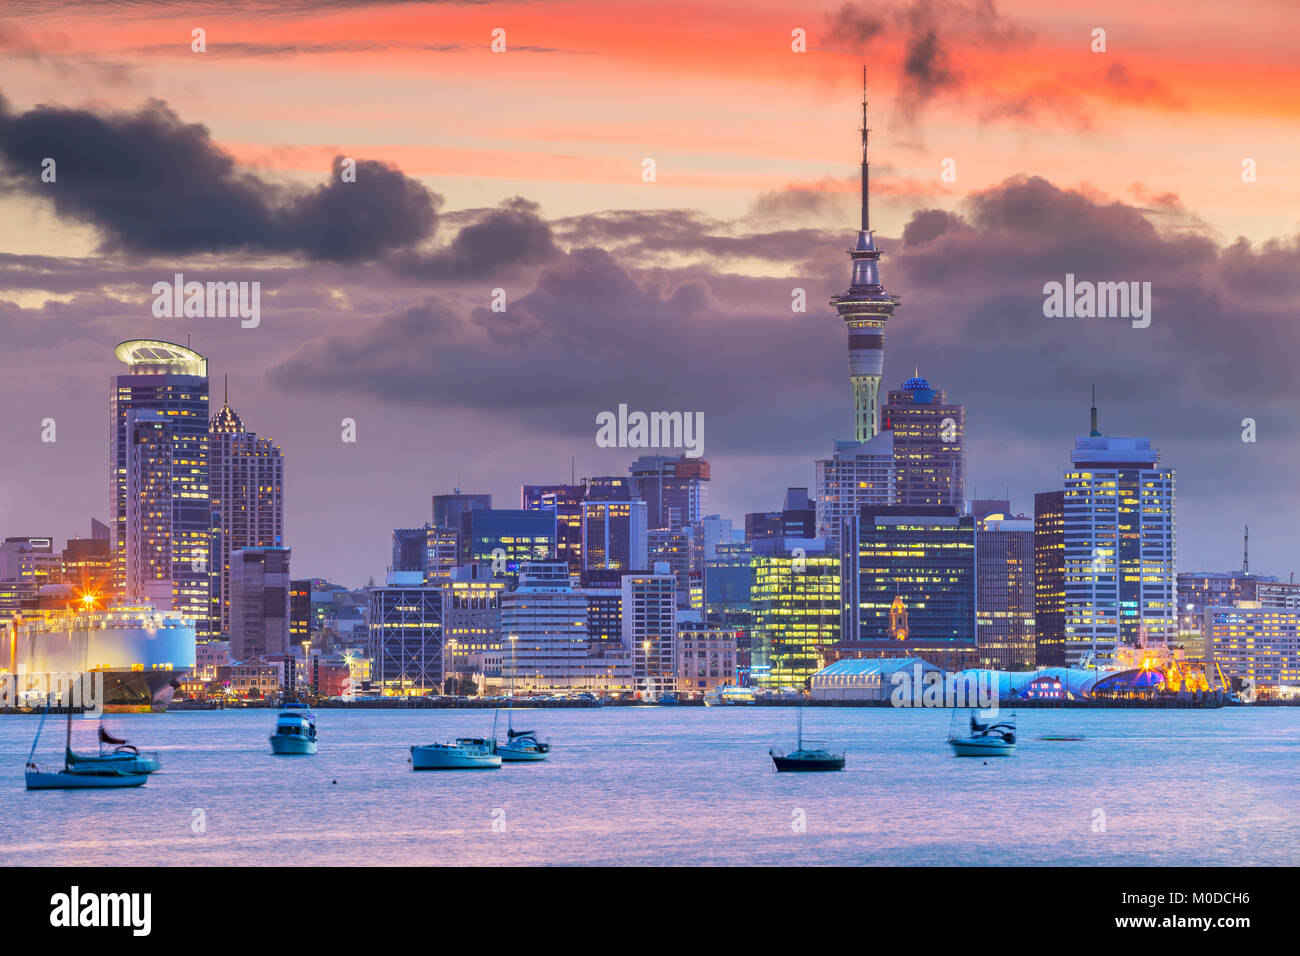 Auckland. Cityscape image of Auckland skyline, New Zealand during sunset. - Stock Image